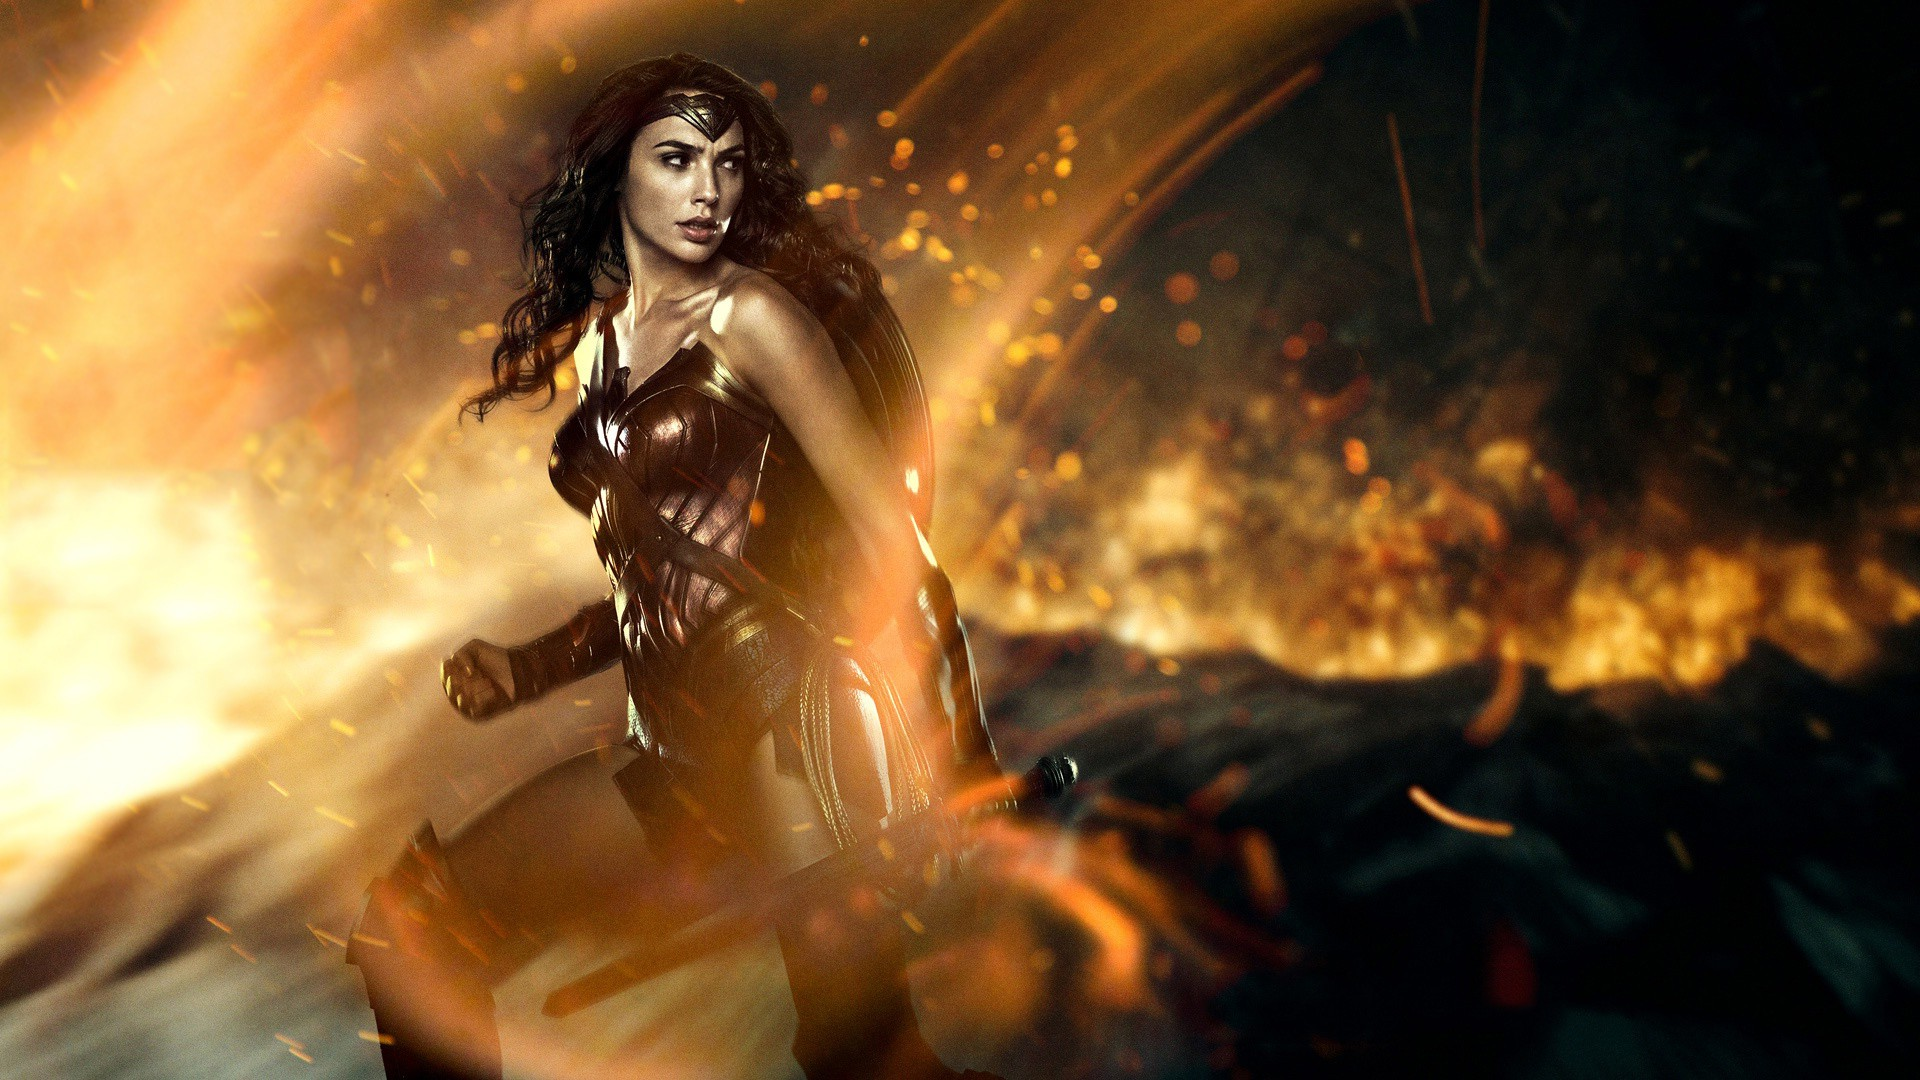 gal gadot amazing wonder women fire pose and cute look mobile hd desktop background free wallpaper